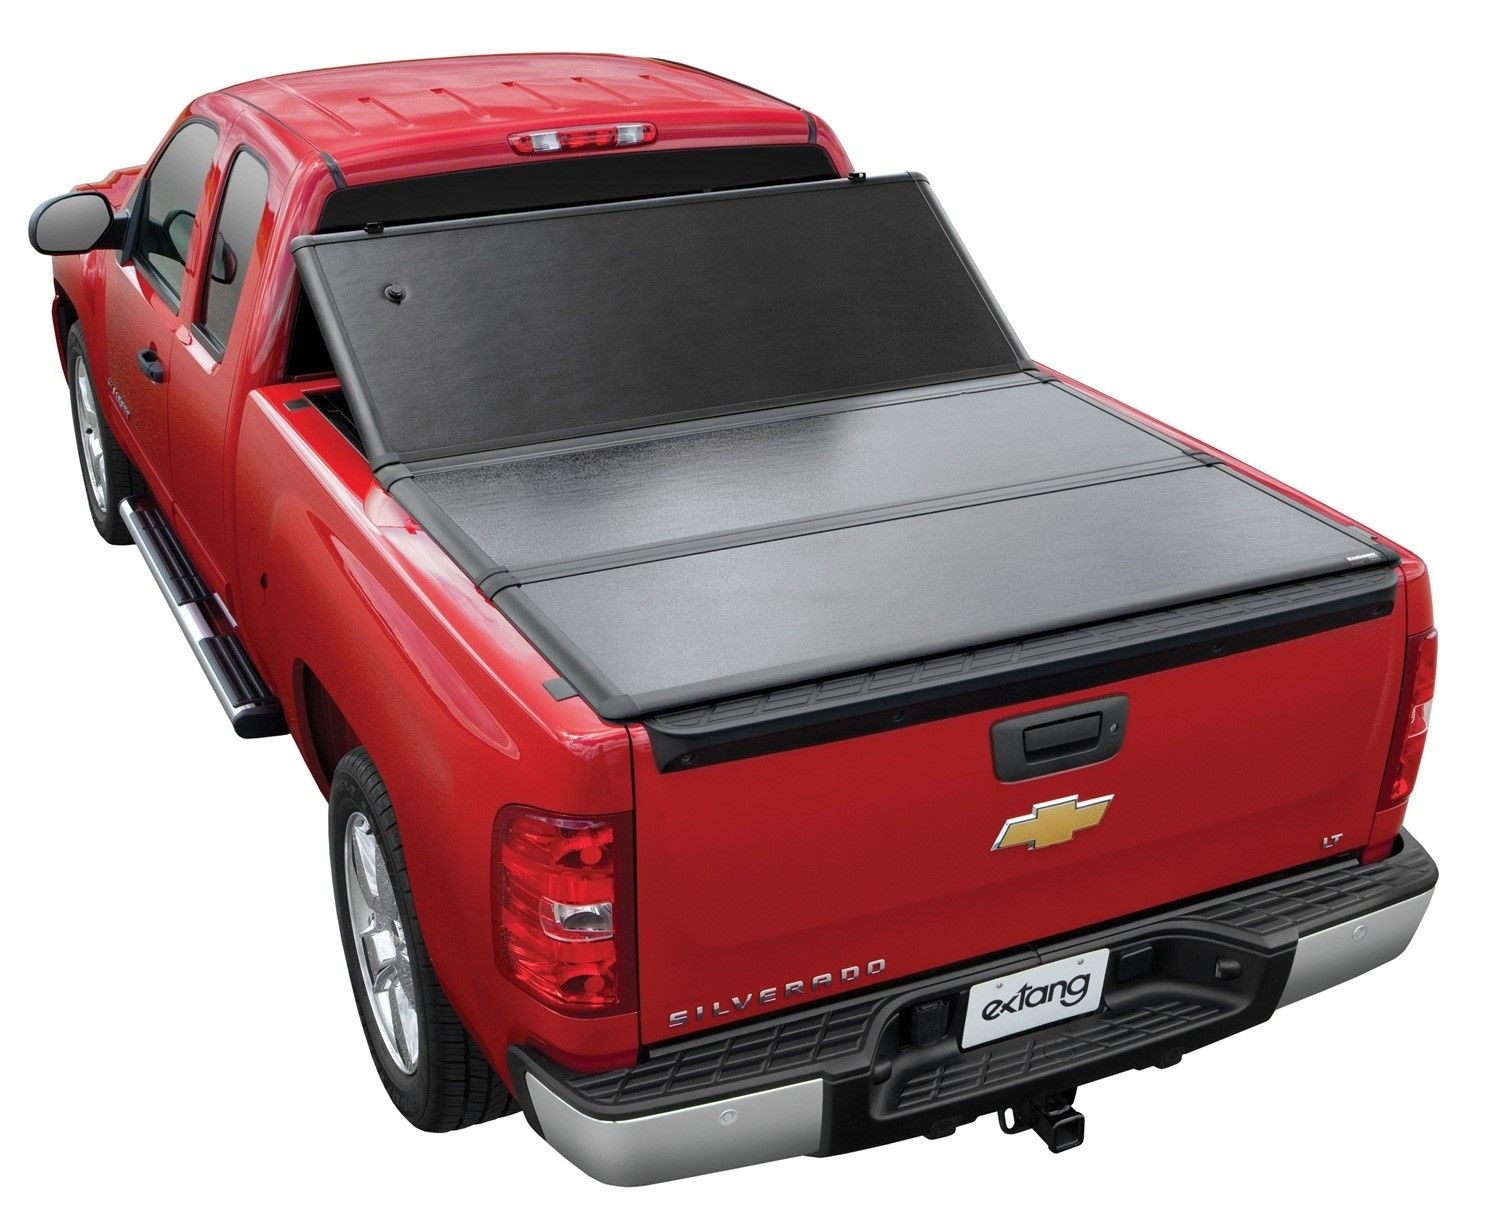 Pin By Streetsideauto On Extang In 2020 Tonneau Cover Folding Tonneau Covers Hard Folding Tonneau Cover